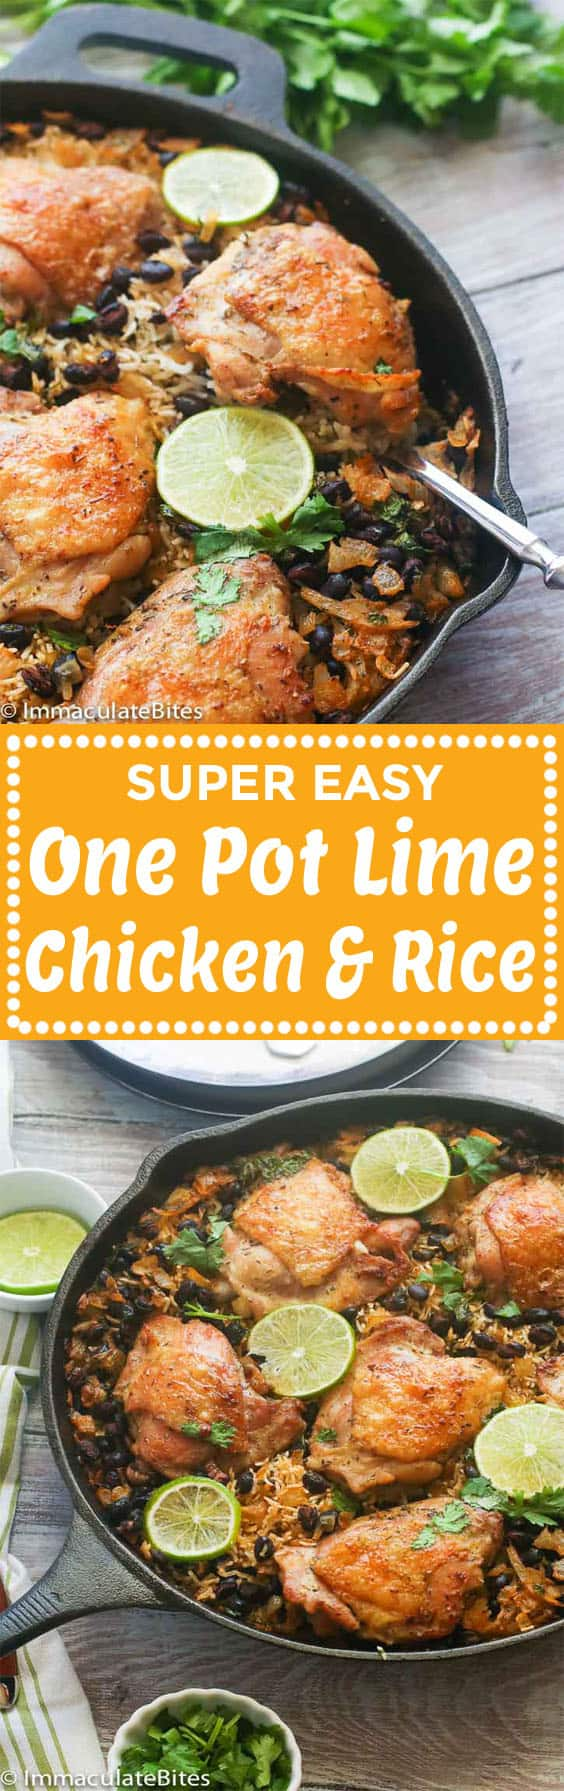 One pot lime chicken and rice.